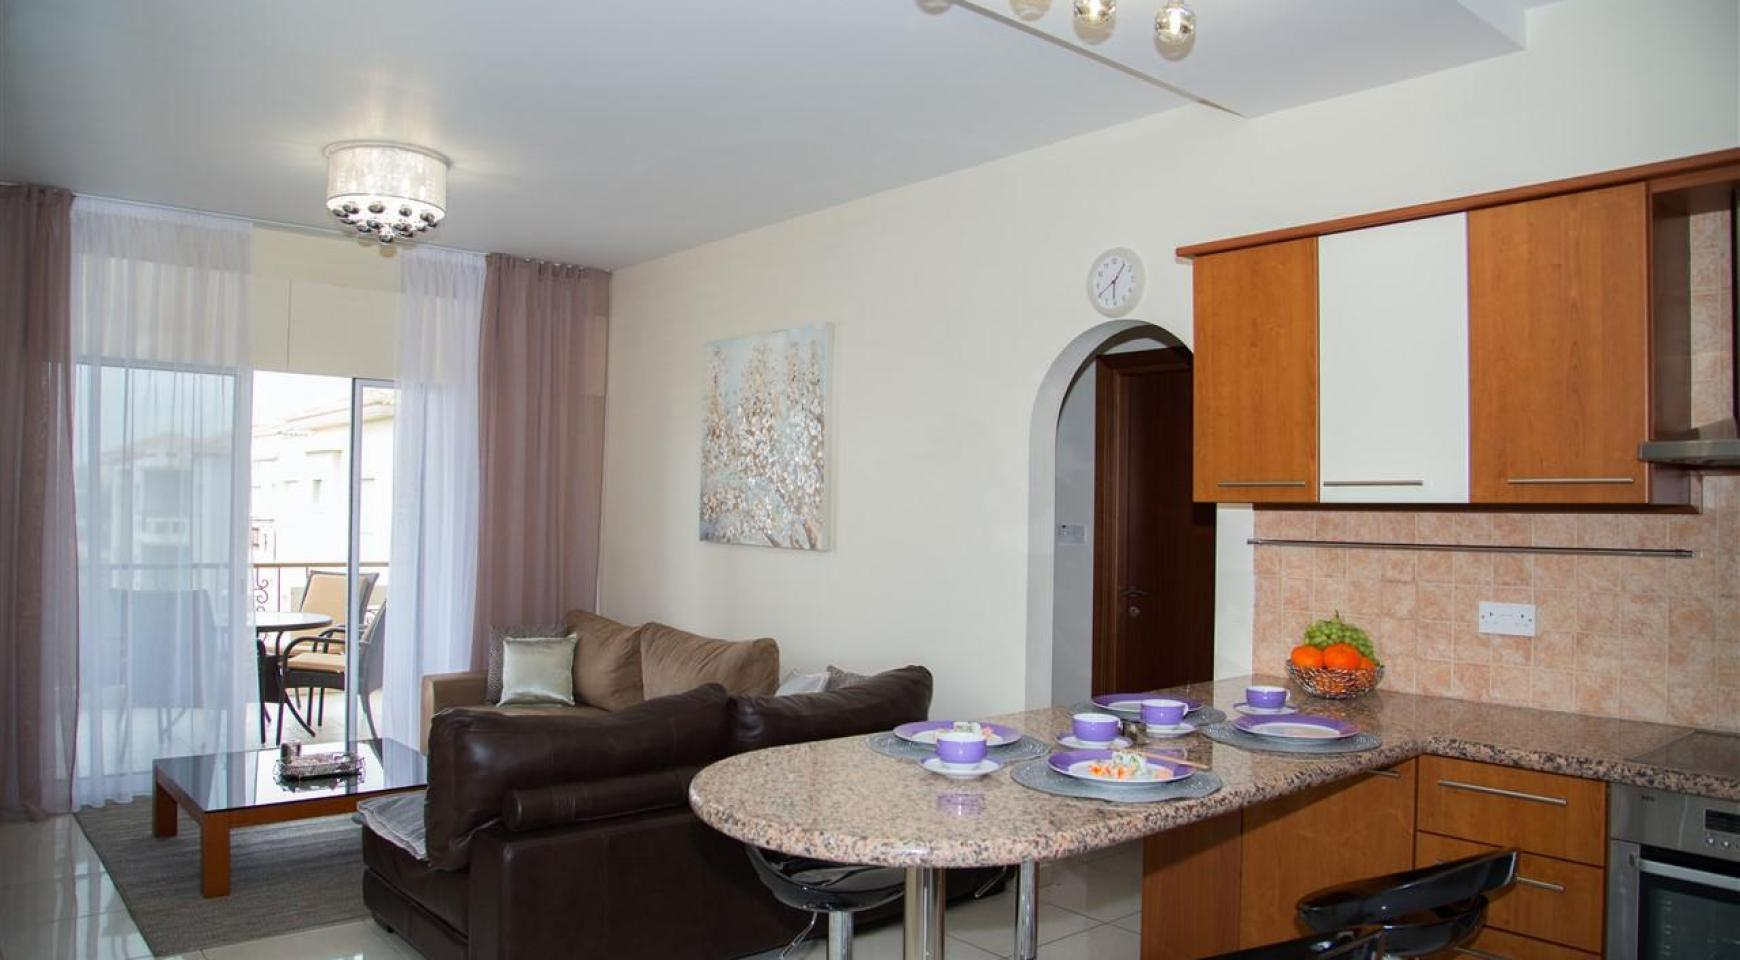 Luxury 2 Bedroom Apartment Mesogios Iris 304 in the Tourist area near the Beach - 2